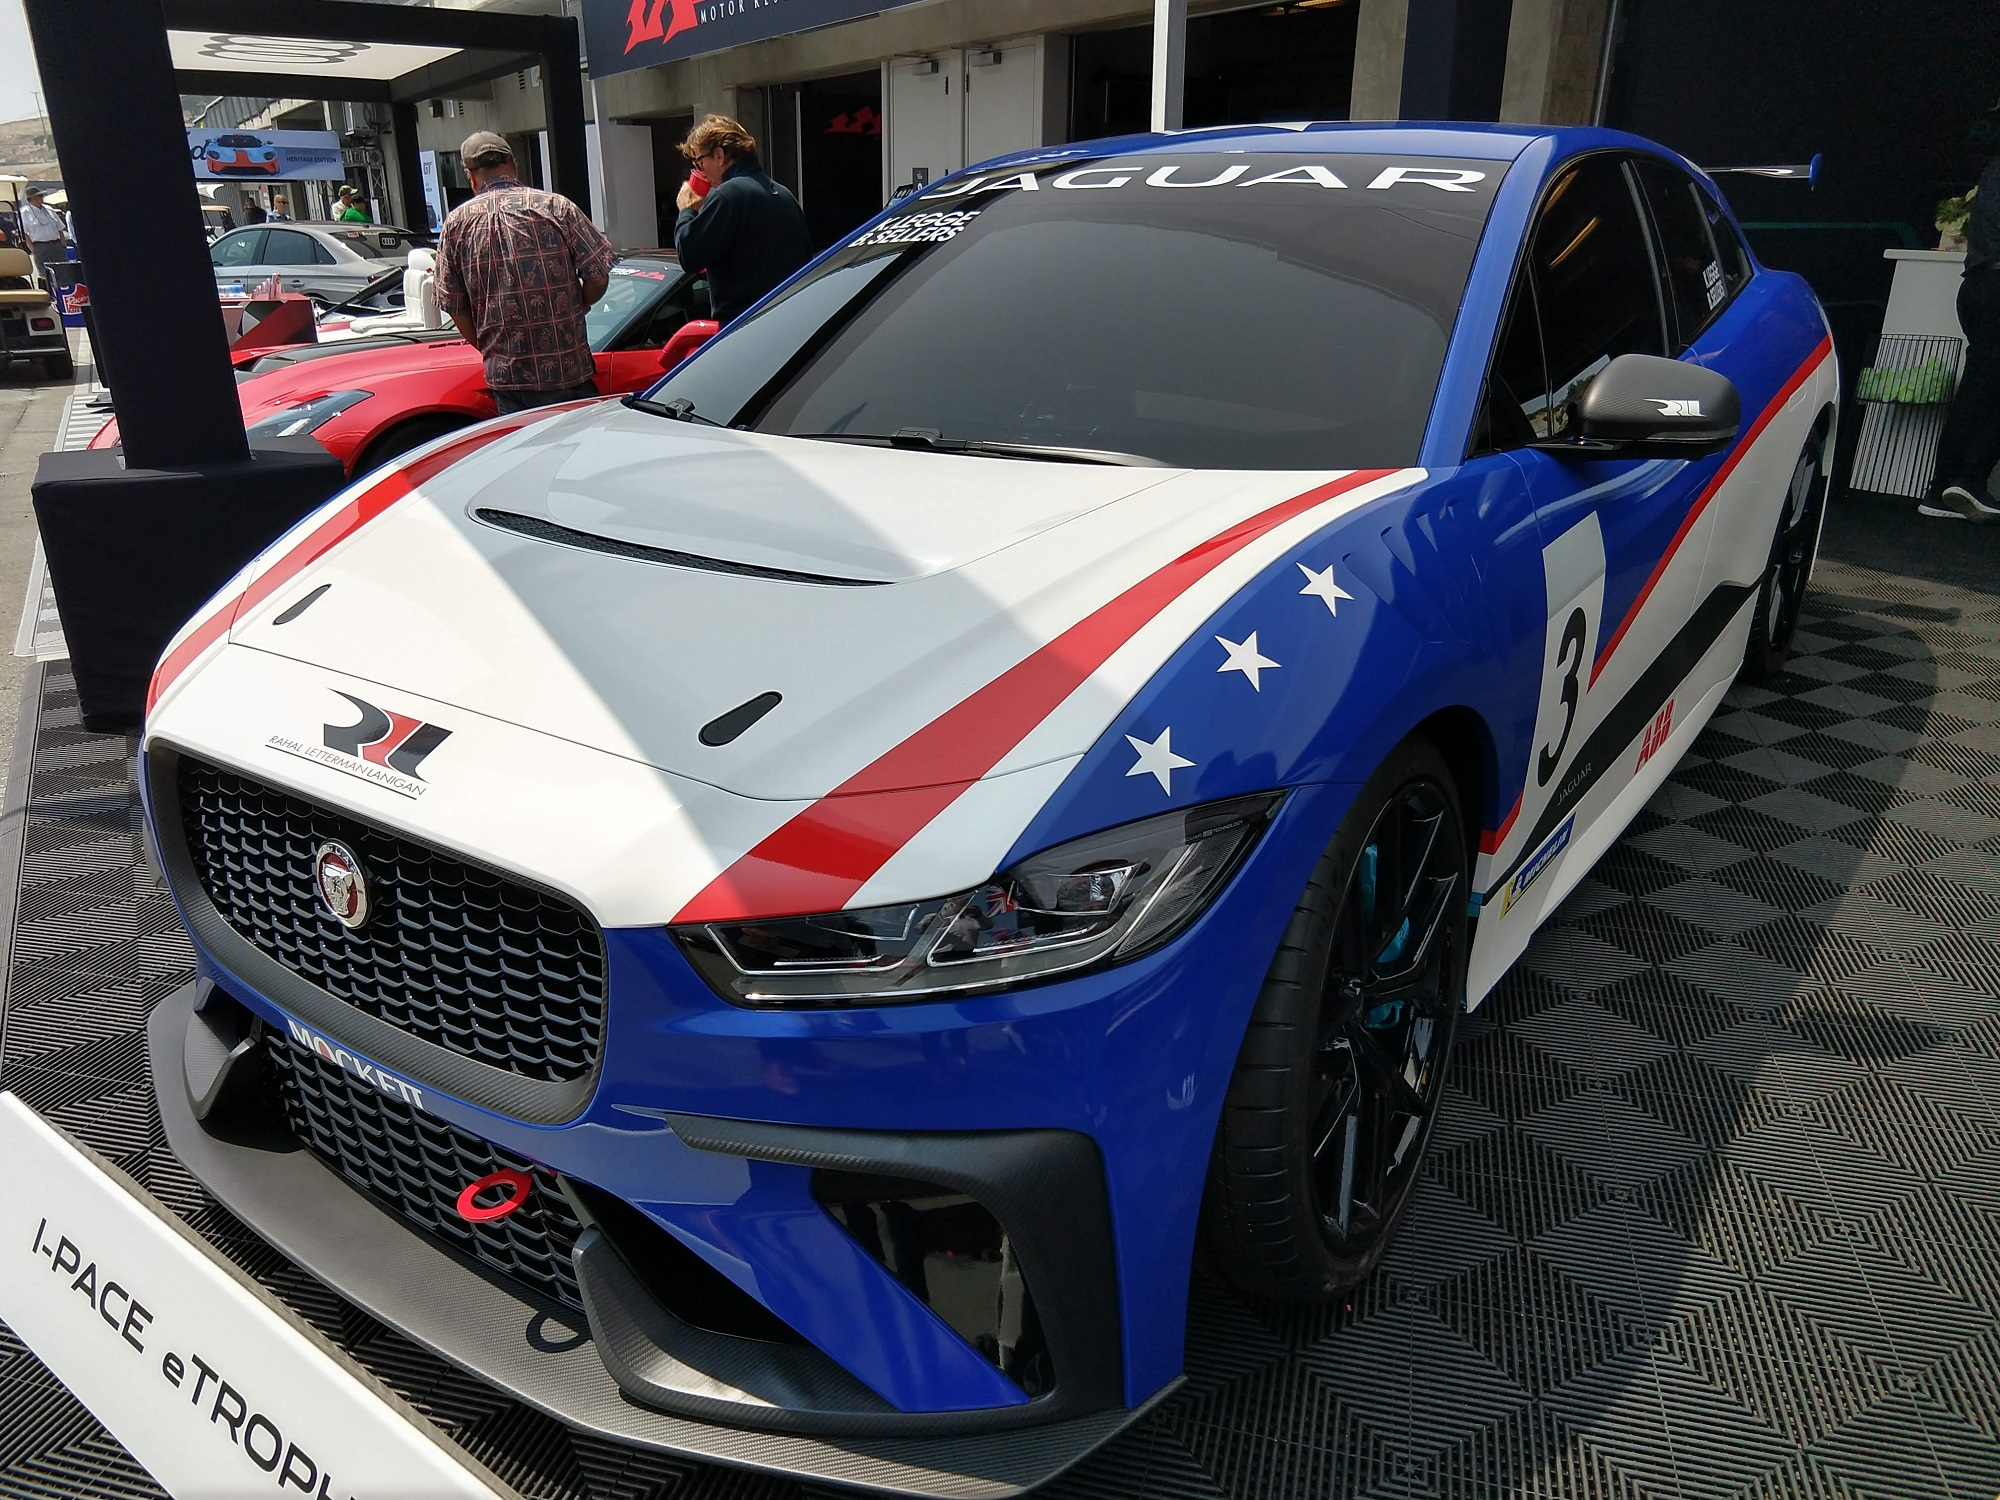 Jaguar I-PACE eTrophy Race Car Pebble Beach Car Week Jaguarforums.com